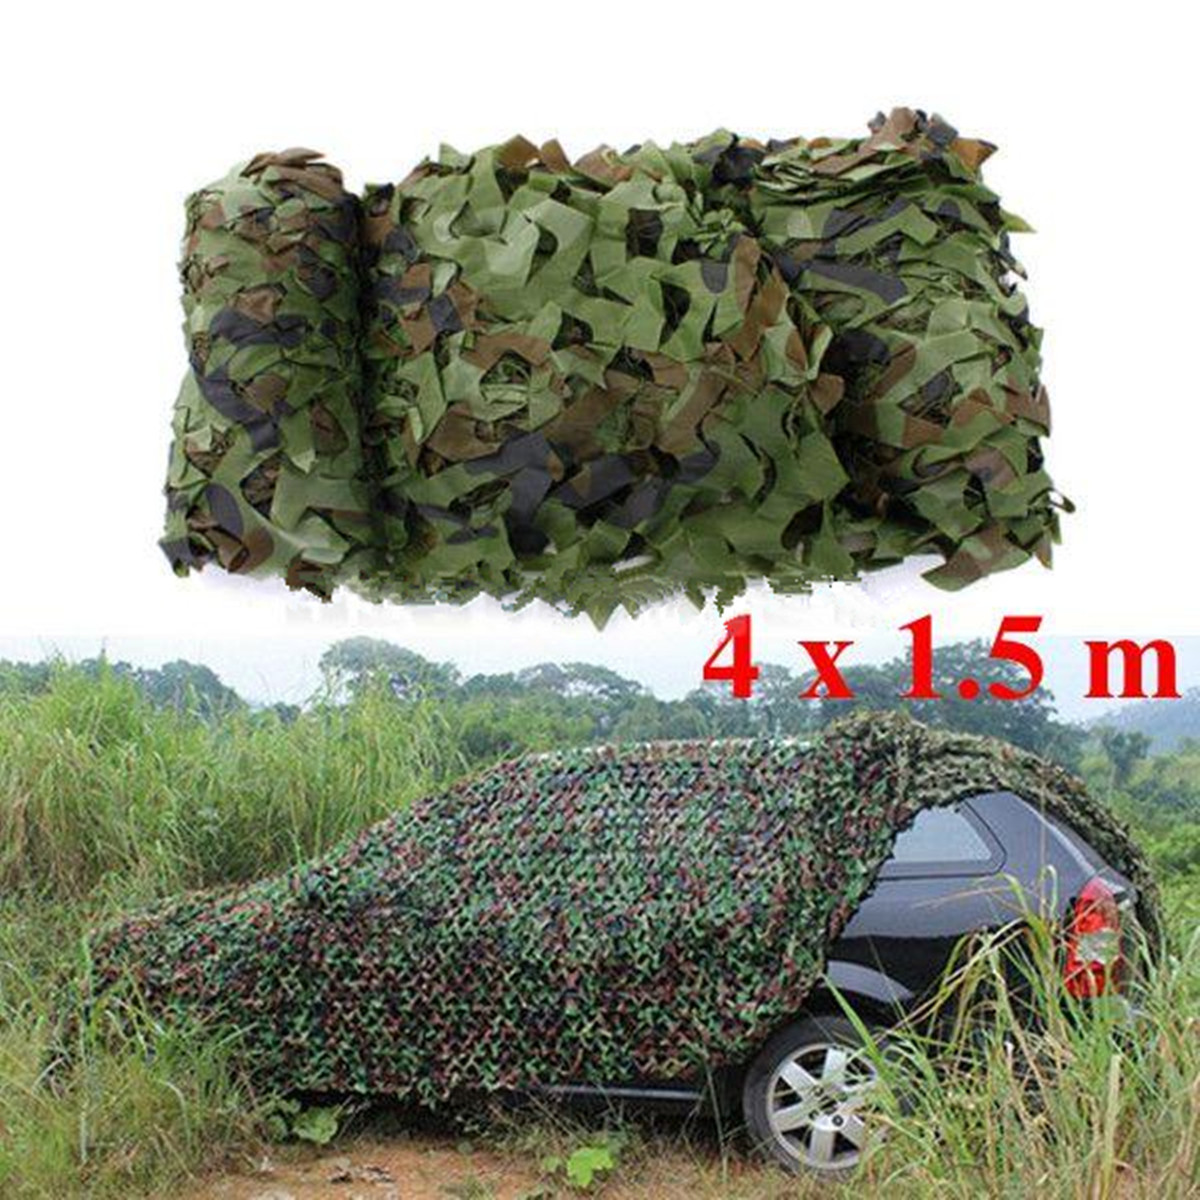 4x1.5m Outdoor Woodland Camo Net Military Camouflage Netting Mesh Games Hide Camouflage Net Hunting Camping Netting Cover 4x4m military camouflage camo net paintball outdoor woodlands leaves netting hunting camping holiday party decorations